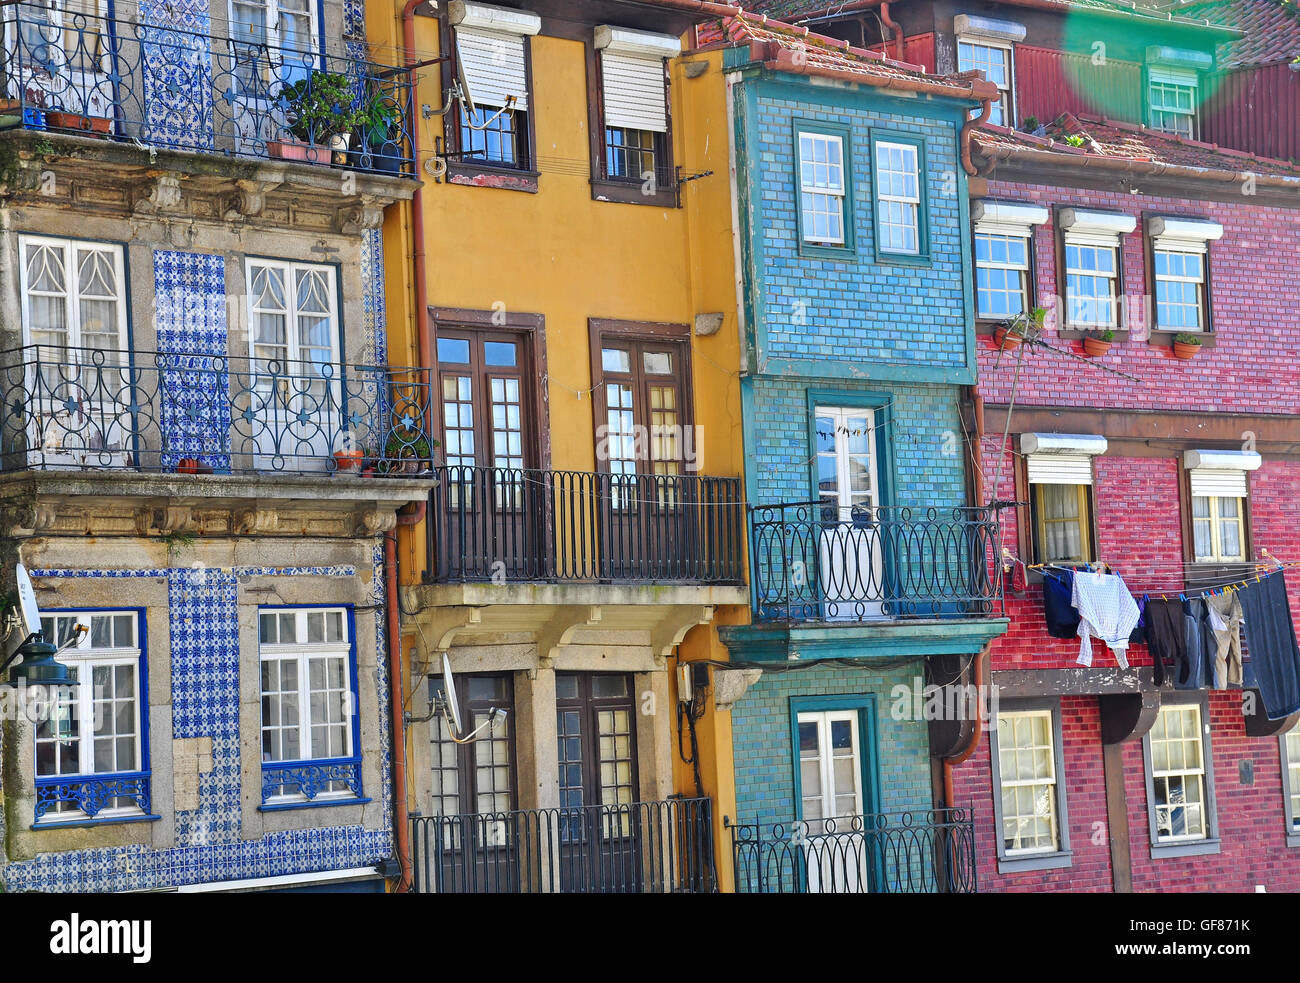 Colorful houses of Oporto, Portugal - Stock Image